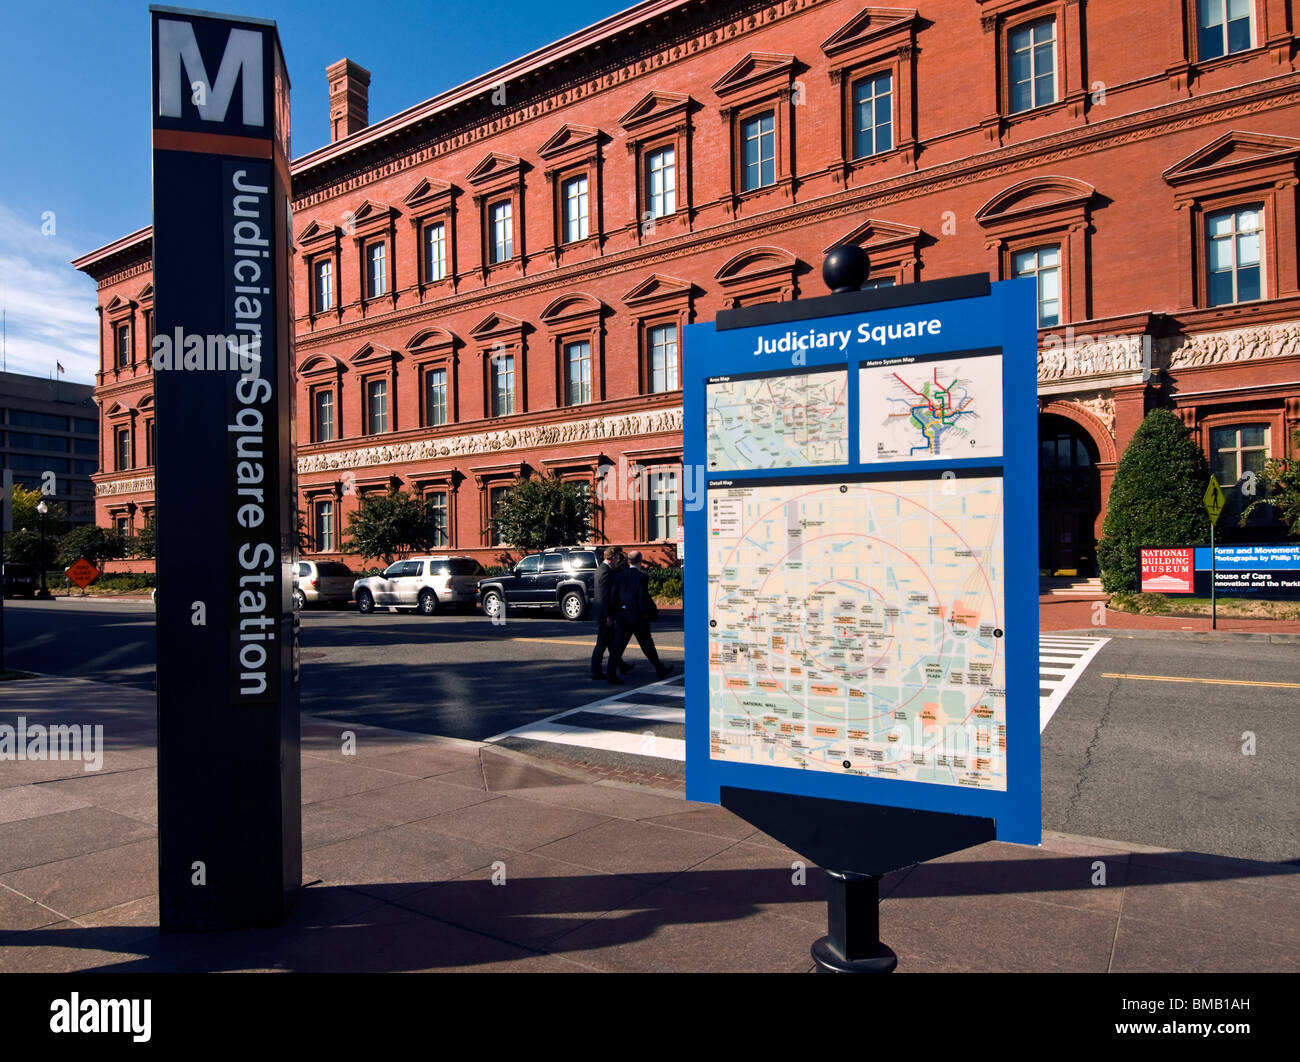 Judiciary Square Metro Station in Washington DC with the Building Museum in background - Stock Image